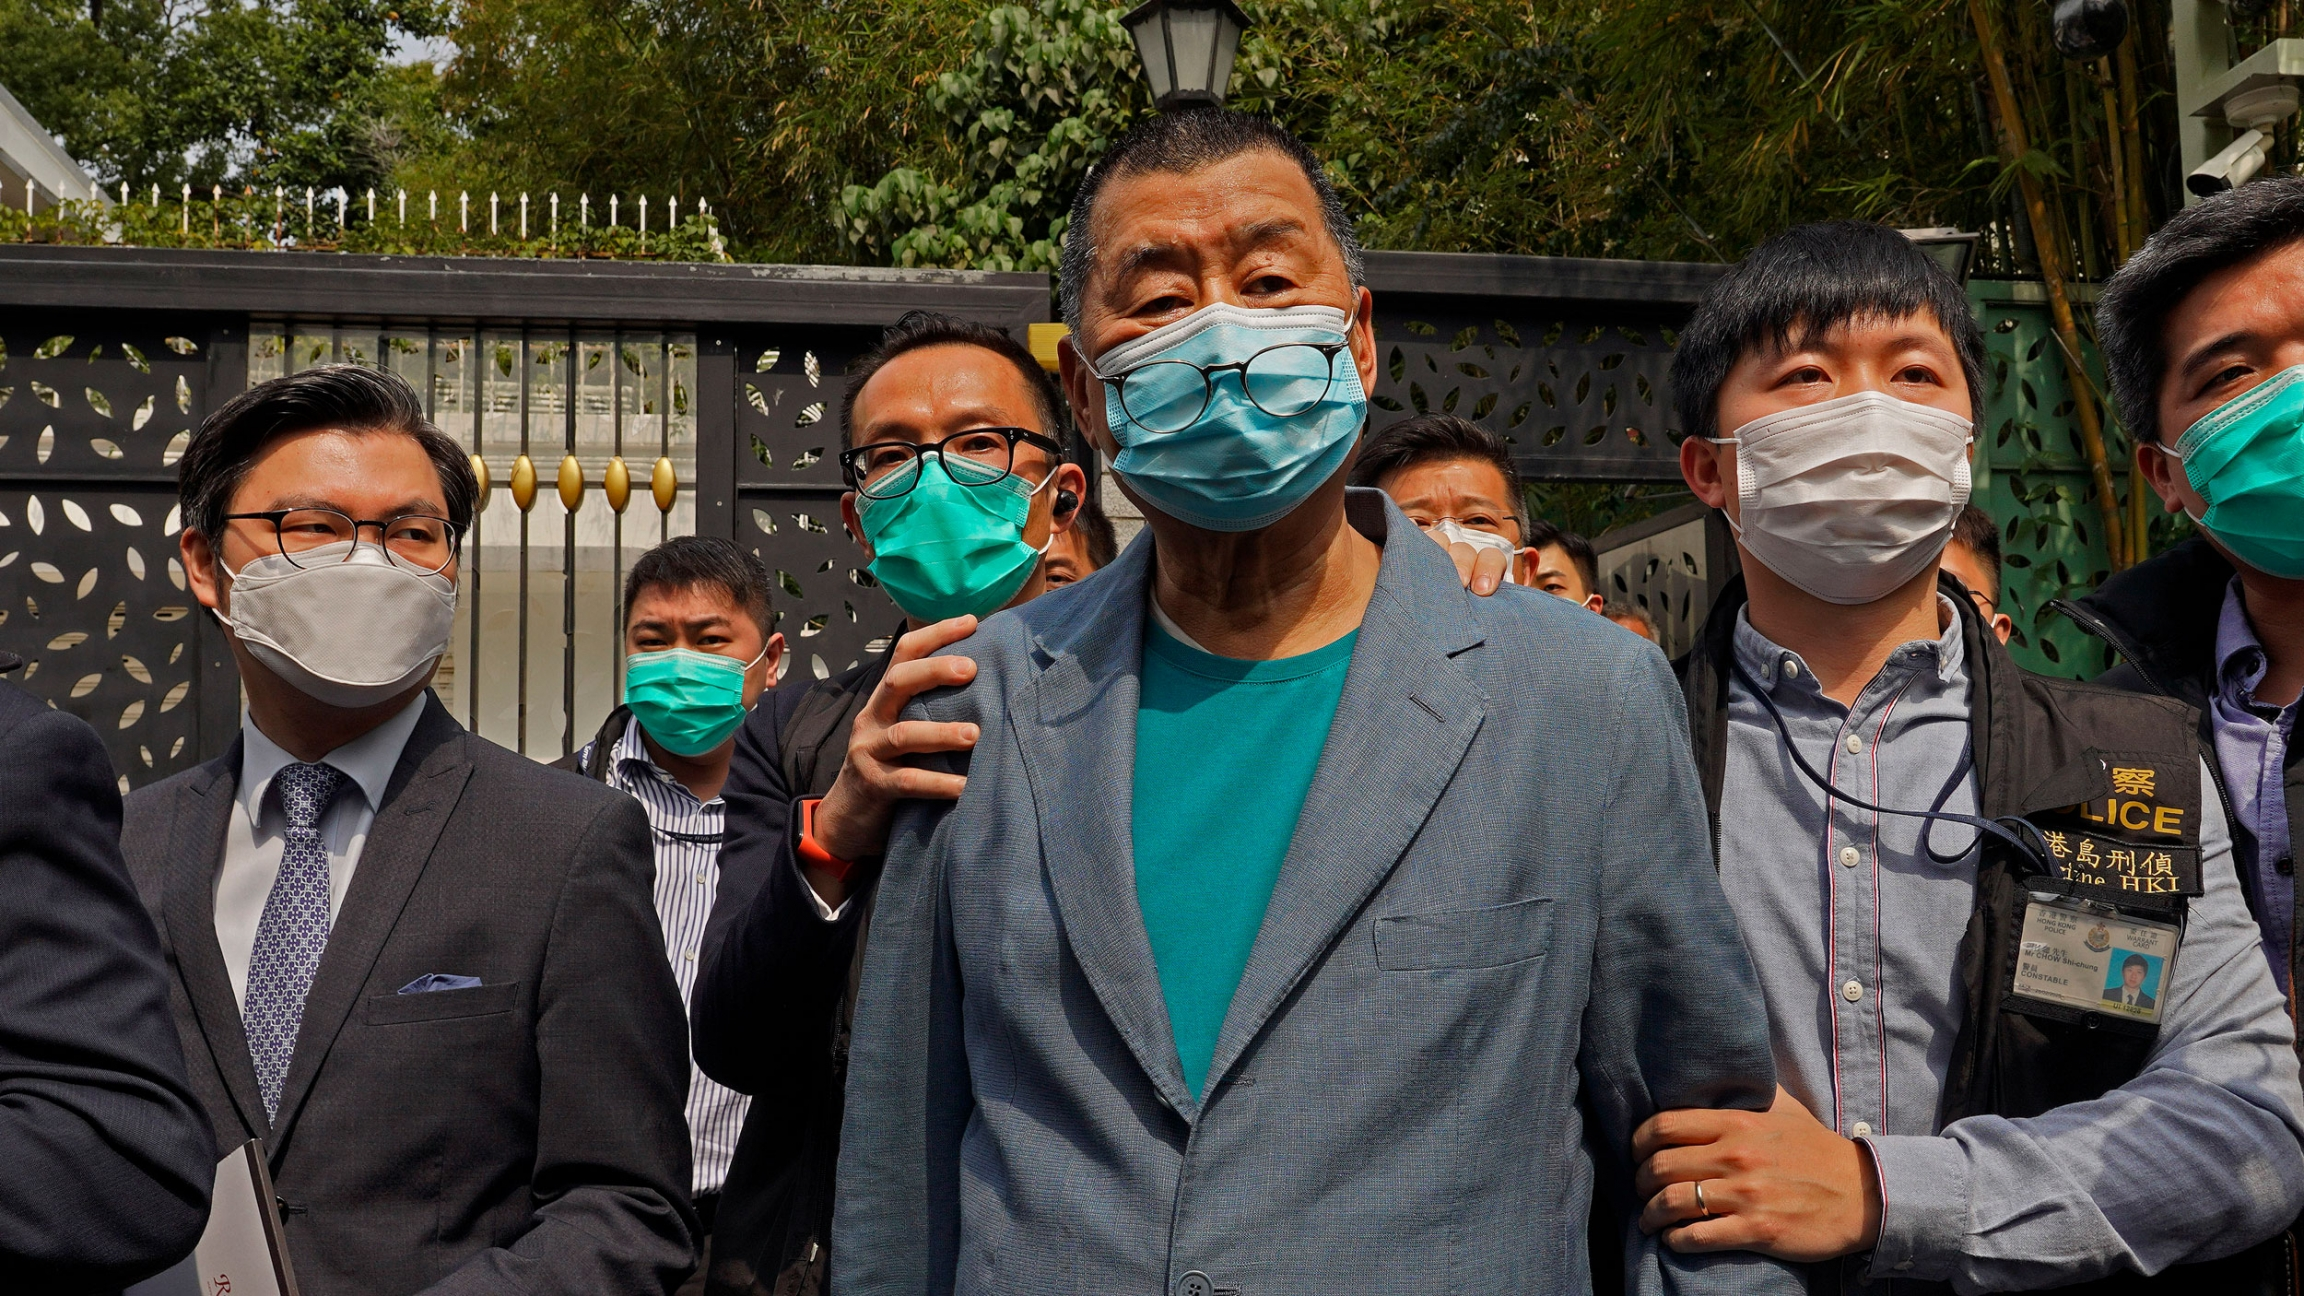 Jimmy Lai is shown being held by security officials while wearing a blue blazer and a face mask.